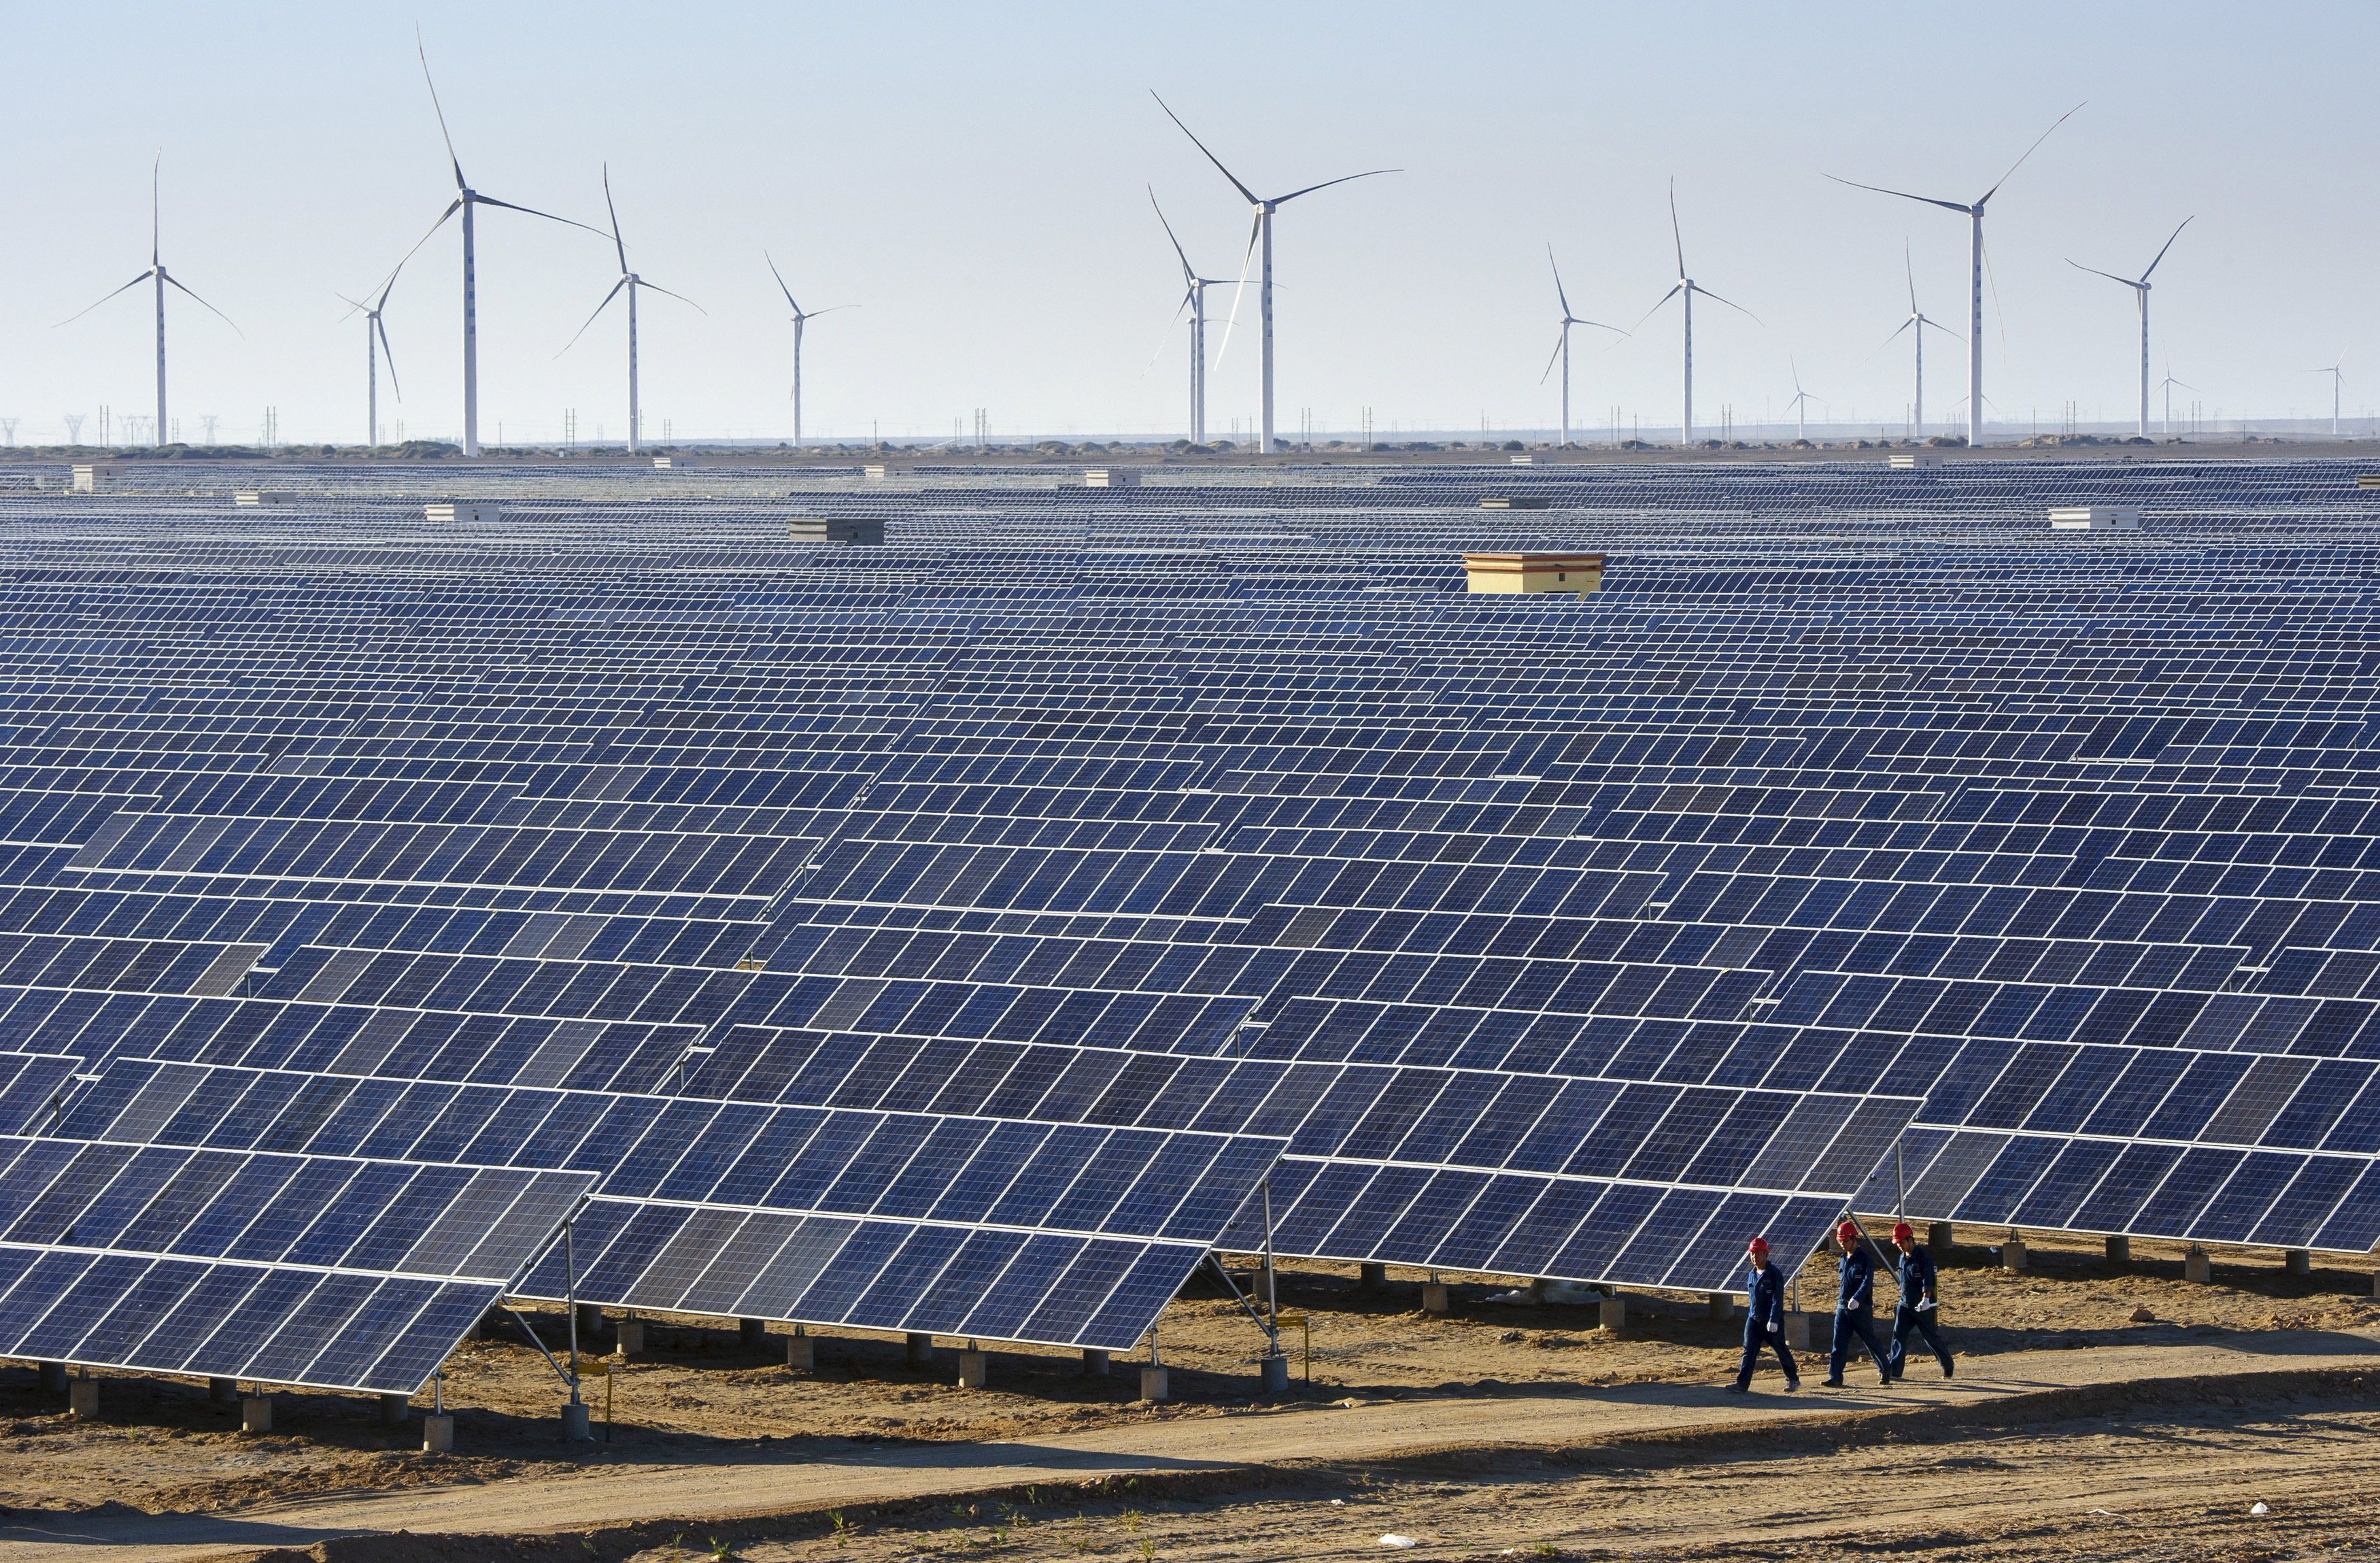 Workers walk past solar panels and wind turbines at a power plant in Hami, Xinjiang Uighur Autonomous Region, China.